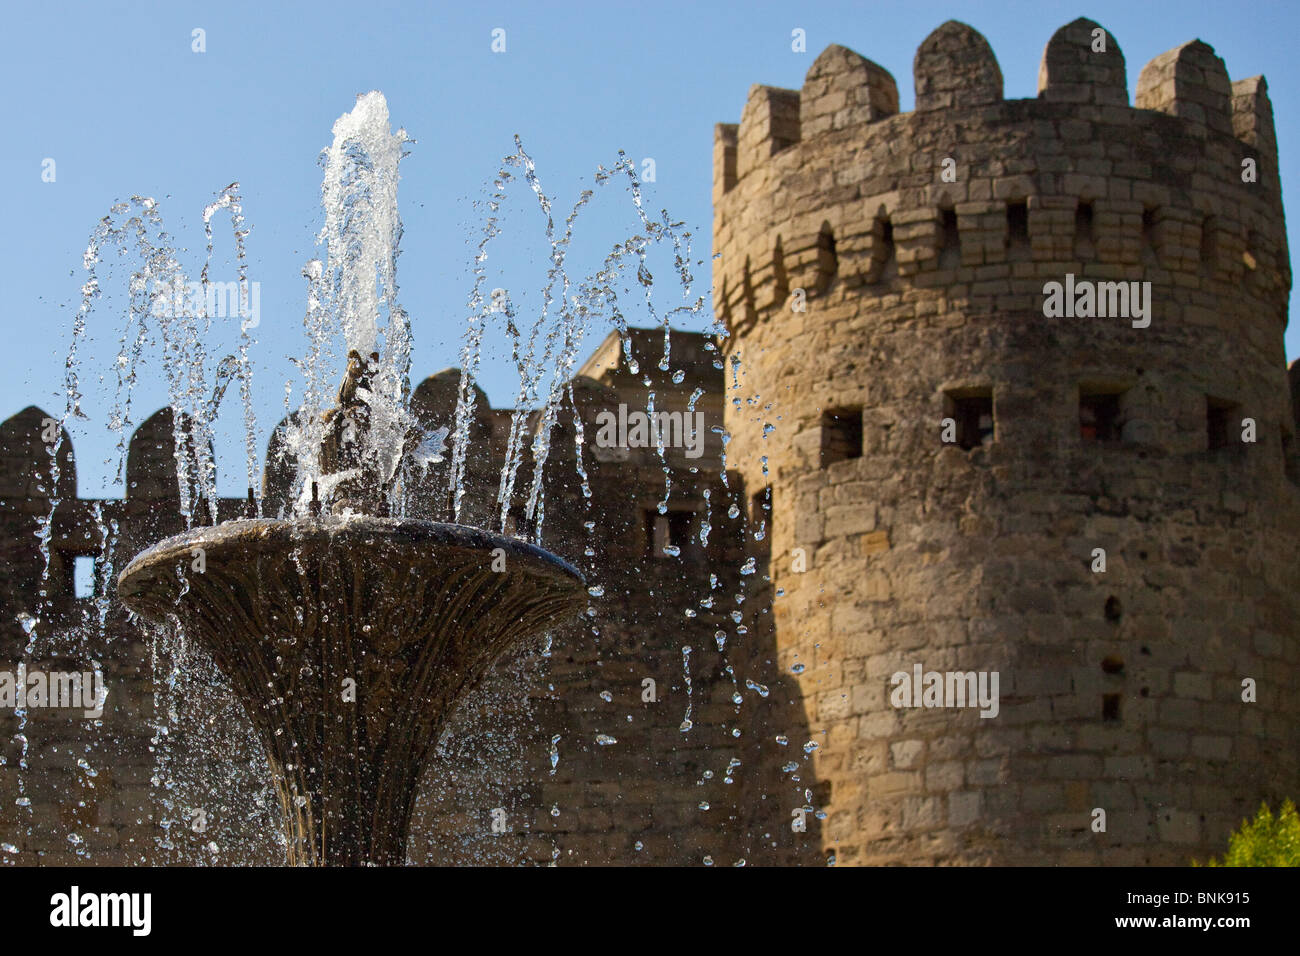 Fountain in front of the old city walls, Baku, Azerbaijan Stock Photo